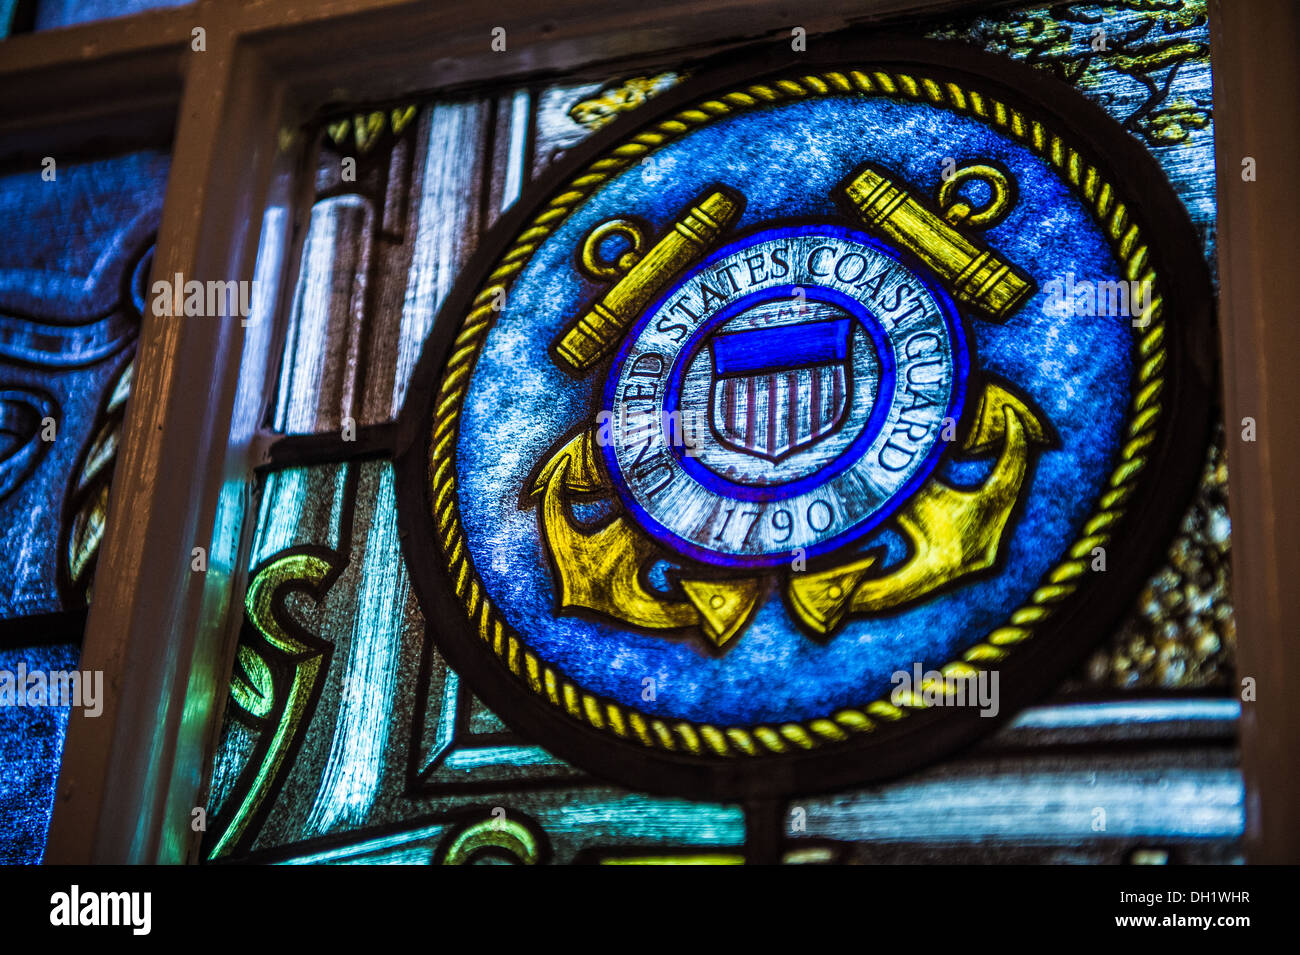 The Coast Guard seal is shown on as it appears on a stained-glass window located inside the Old Post Chapel at the Arlington National Cemetary Tuesday, Oct. 15, 2013. The chapel was built in 1934. - Stock Image